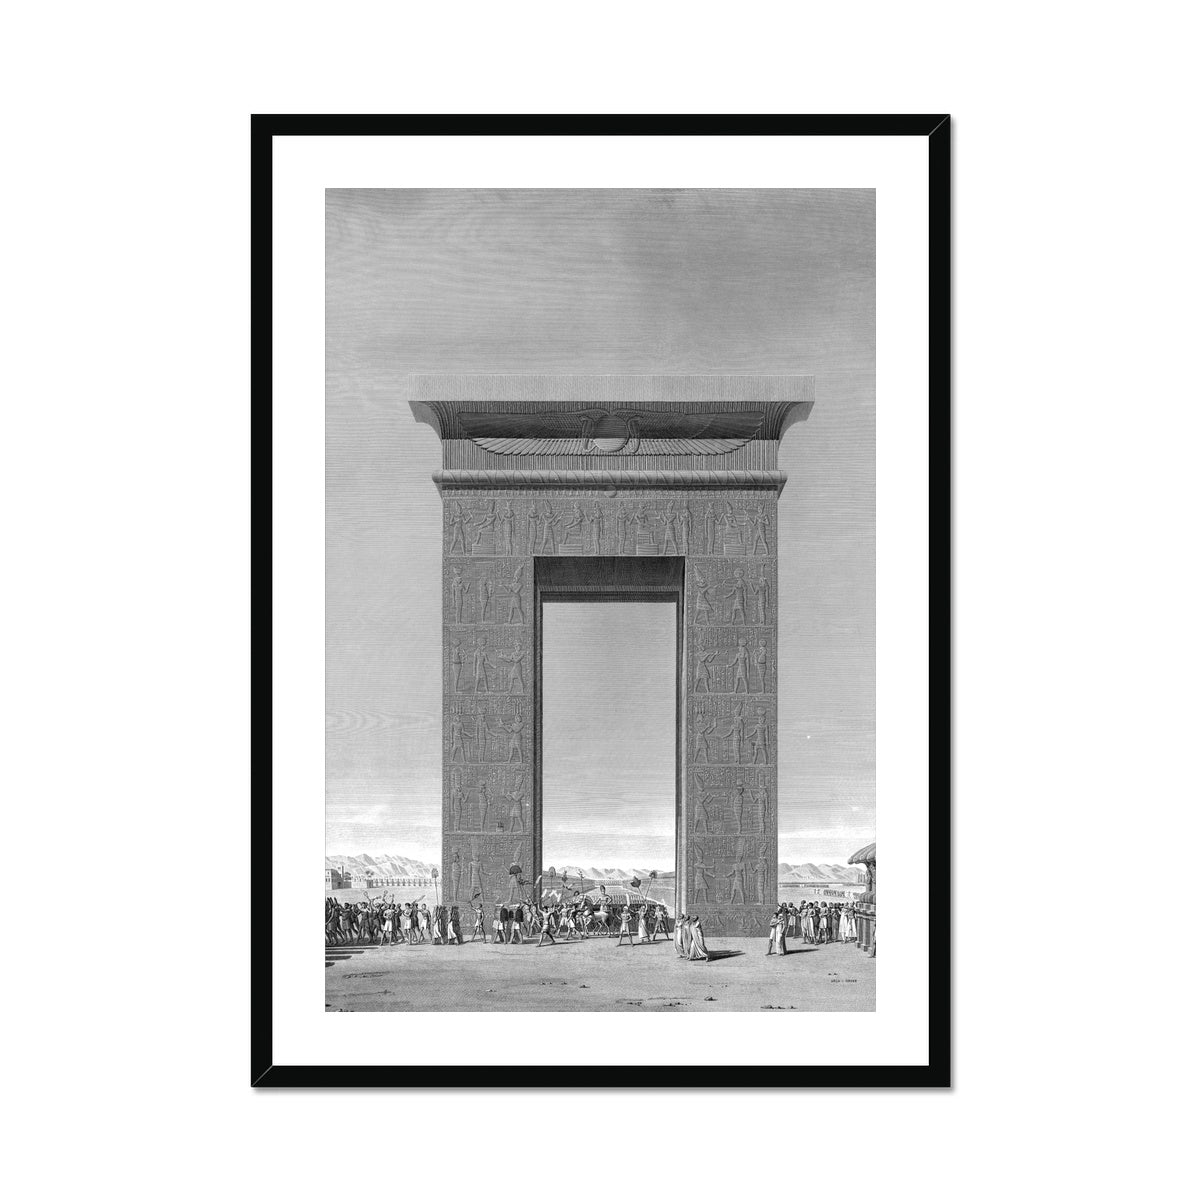 Elevation of the South Gate - Karnak - Thebes Egypt -  Framed & Mounted Print